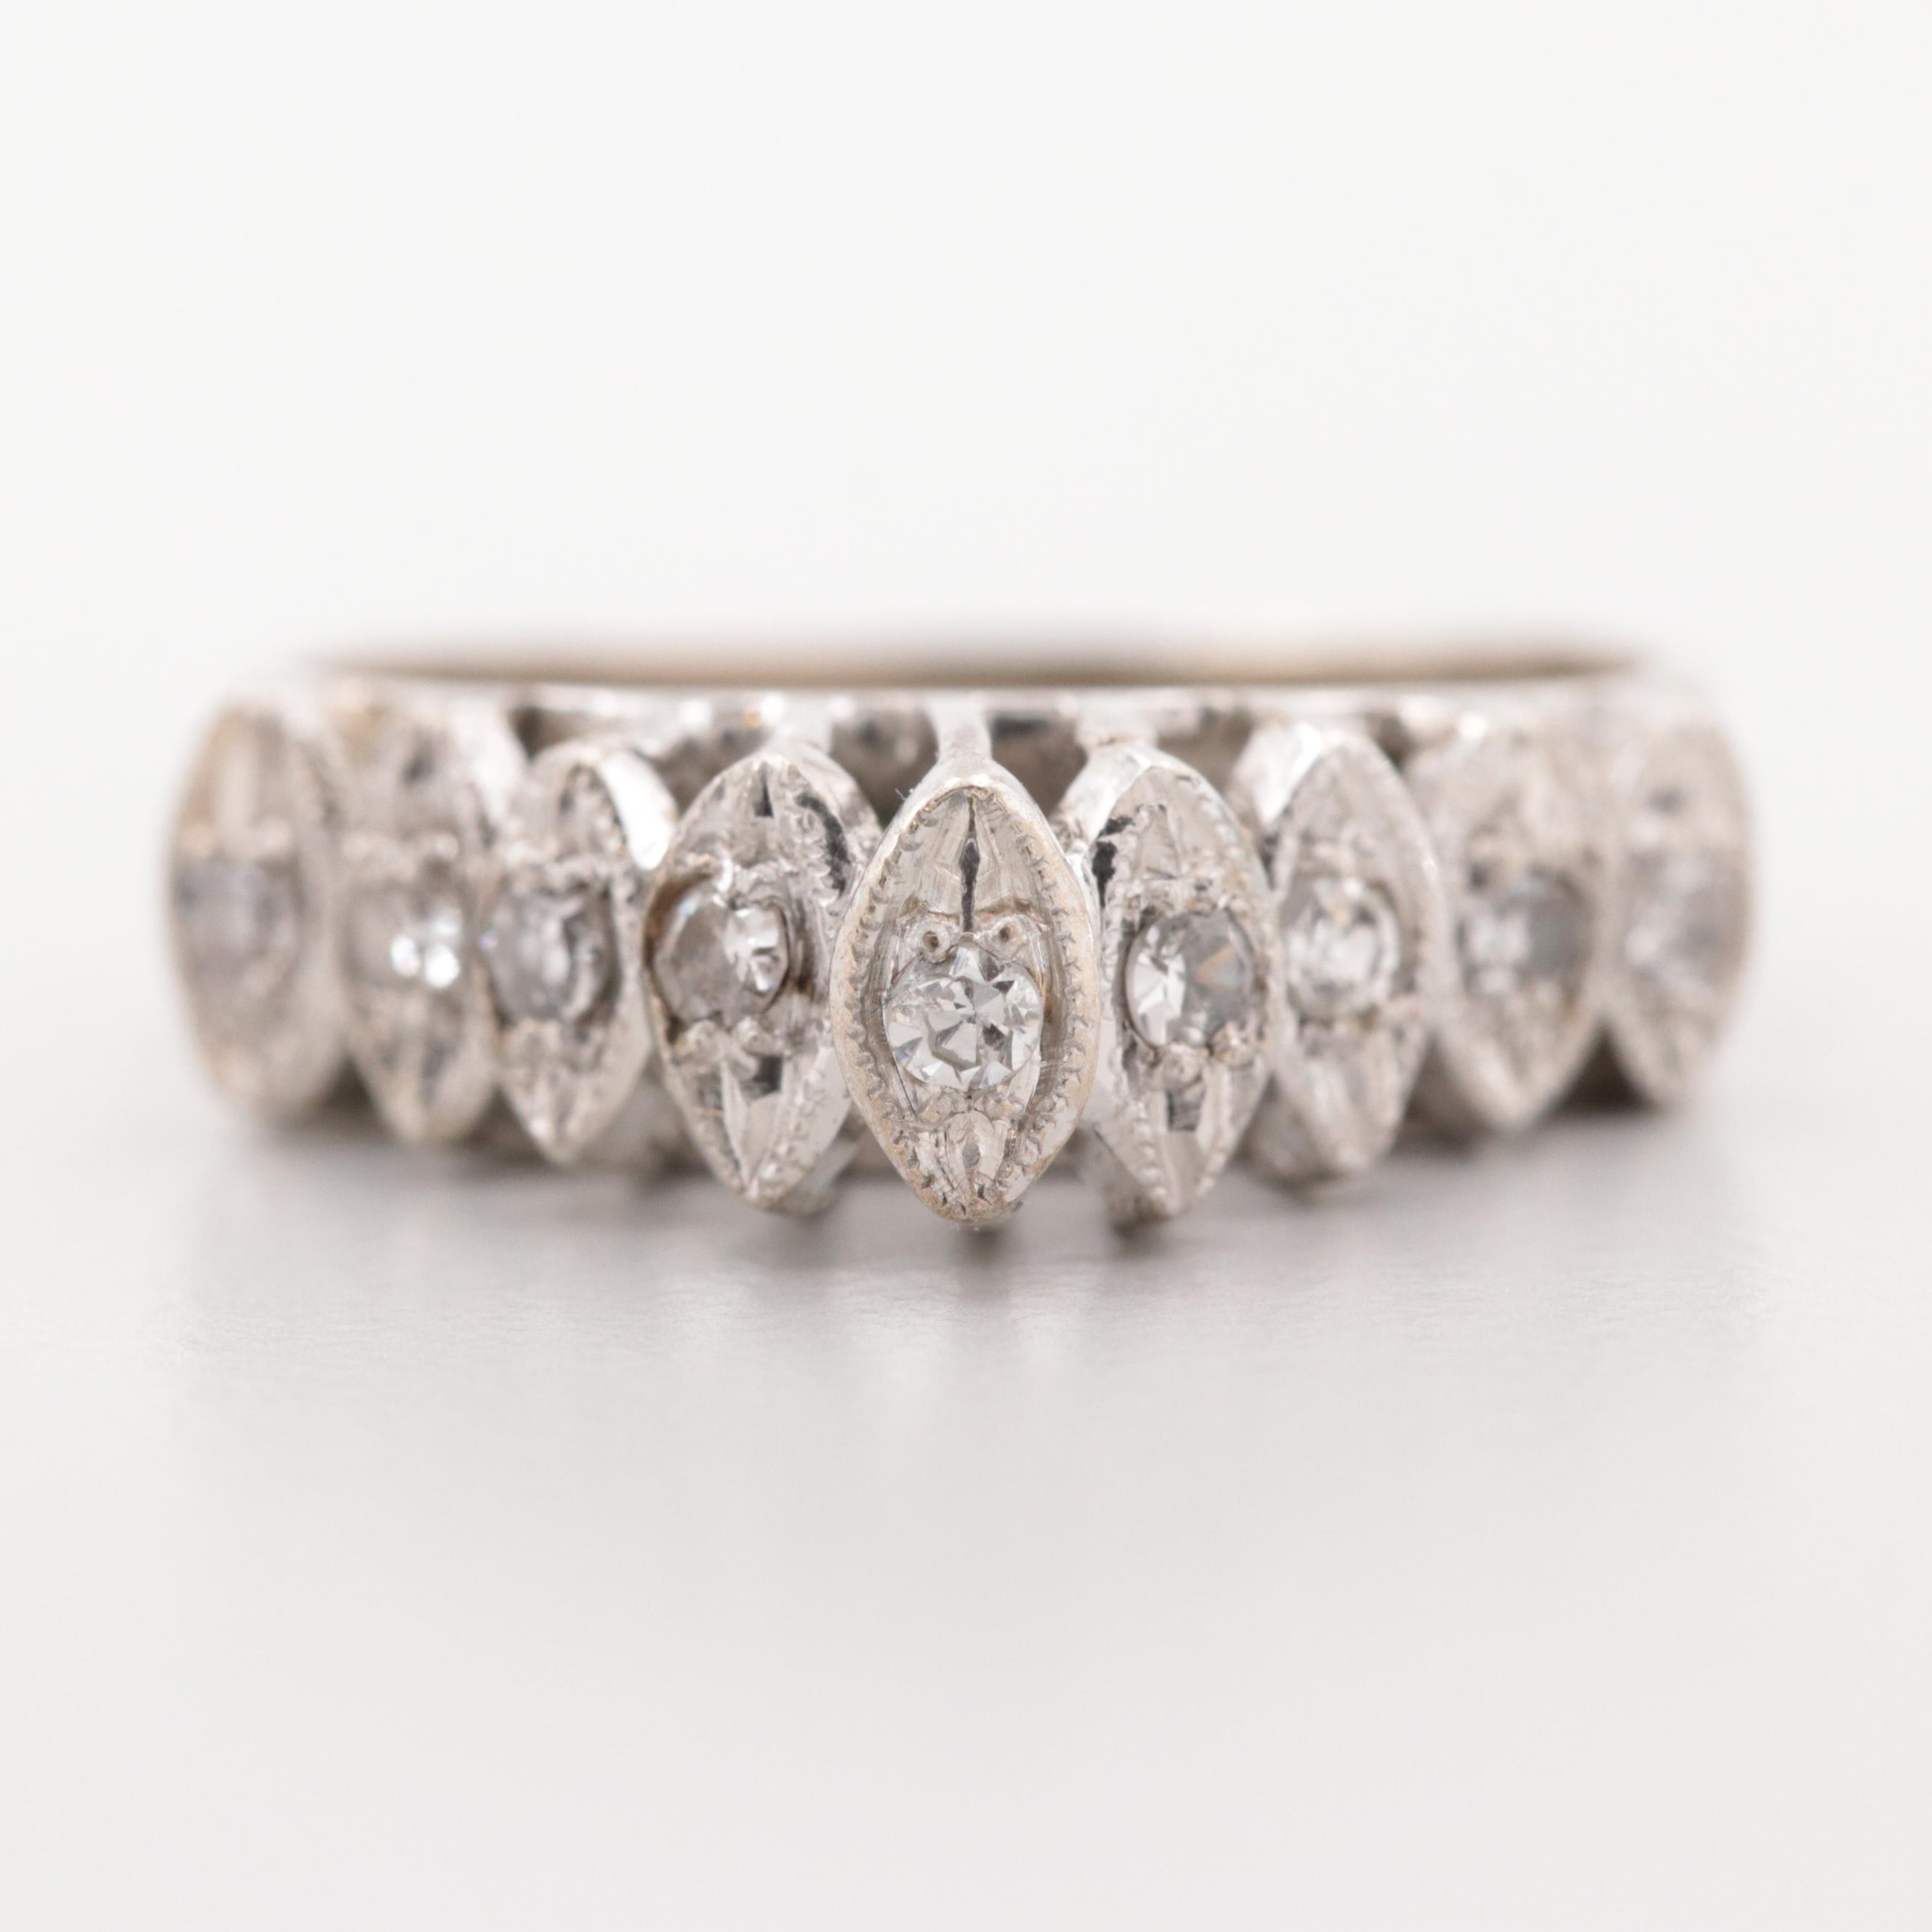 Vintage 10K White Gold Diamond Cathedral Style Band